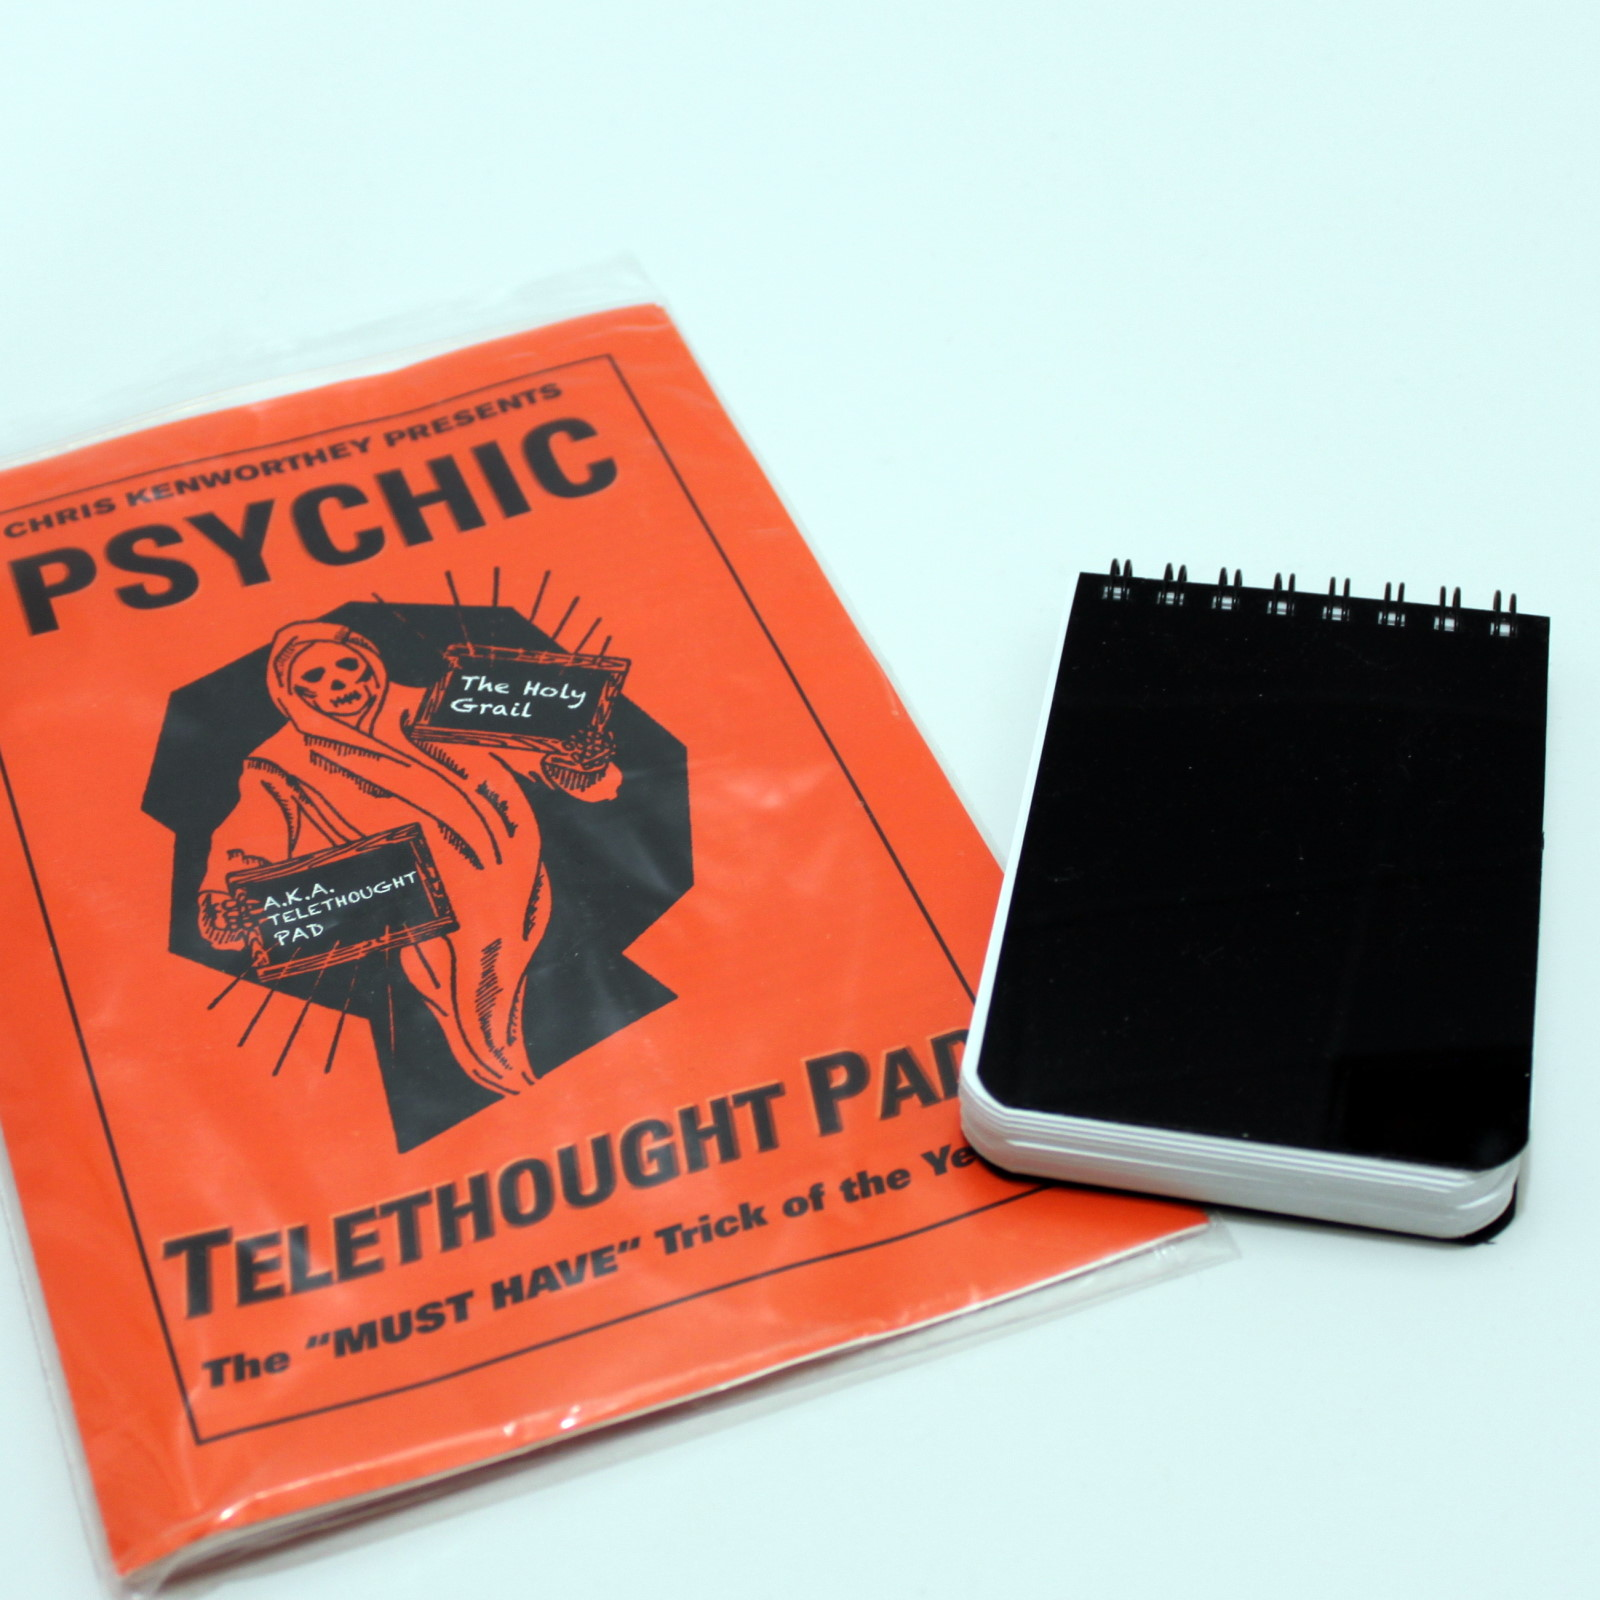 Telethought Pad (Regular) by Chris Kenworthey